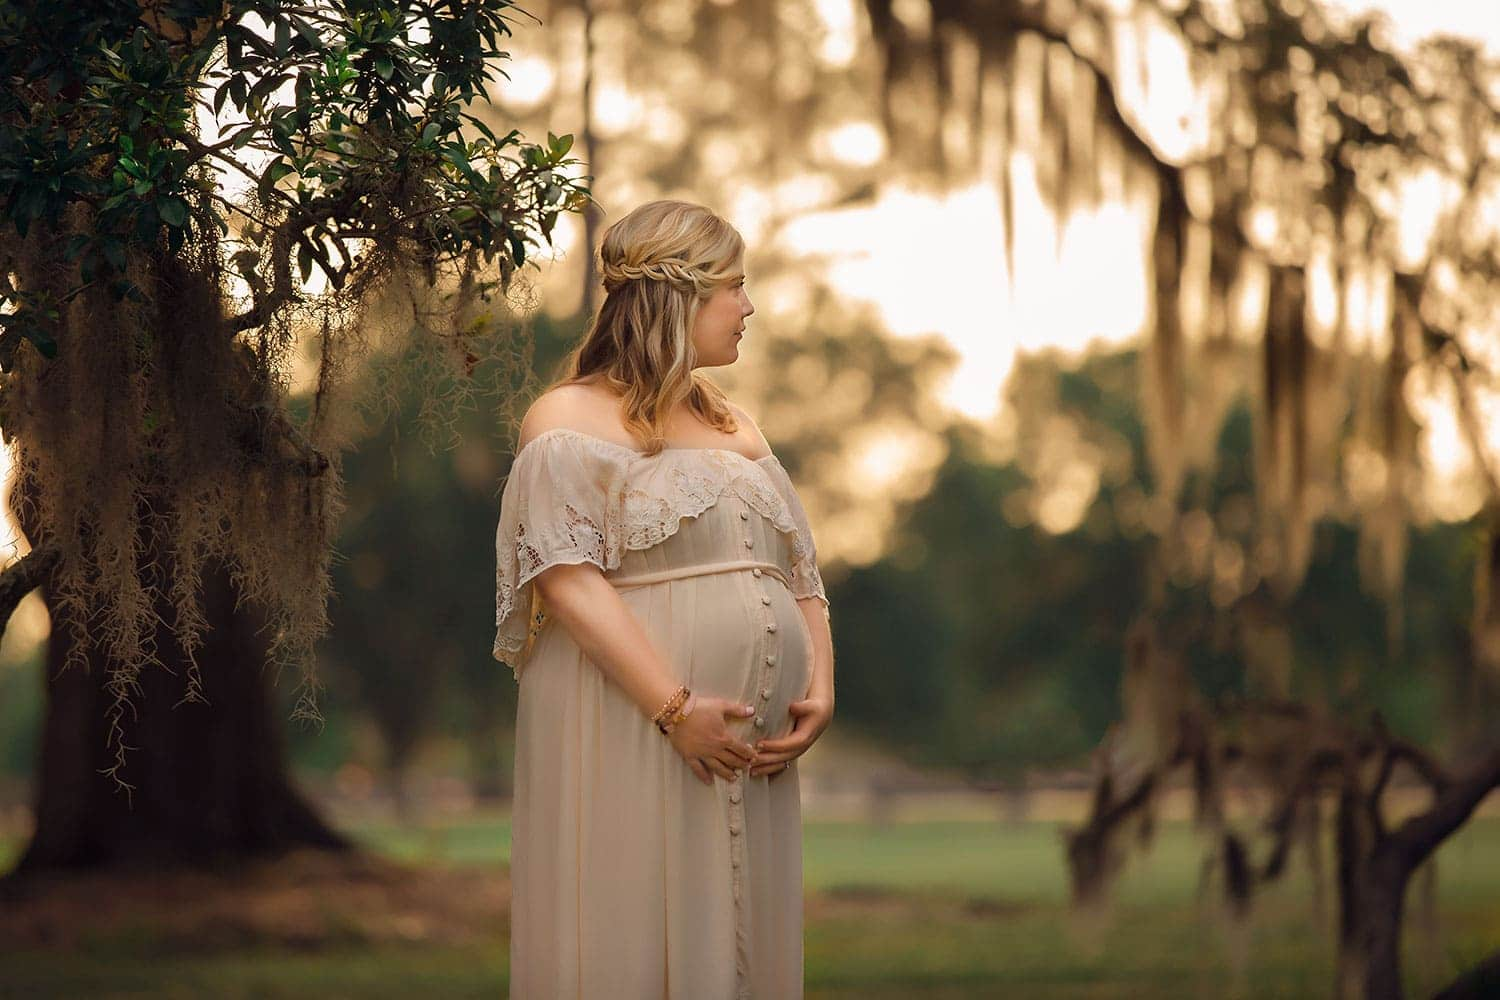 Louisiana Maternity photographer-Annie Whitaker Photography